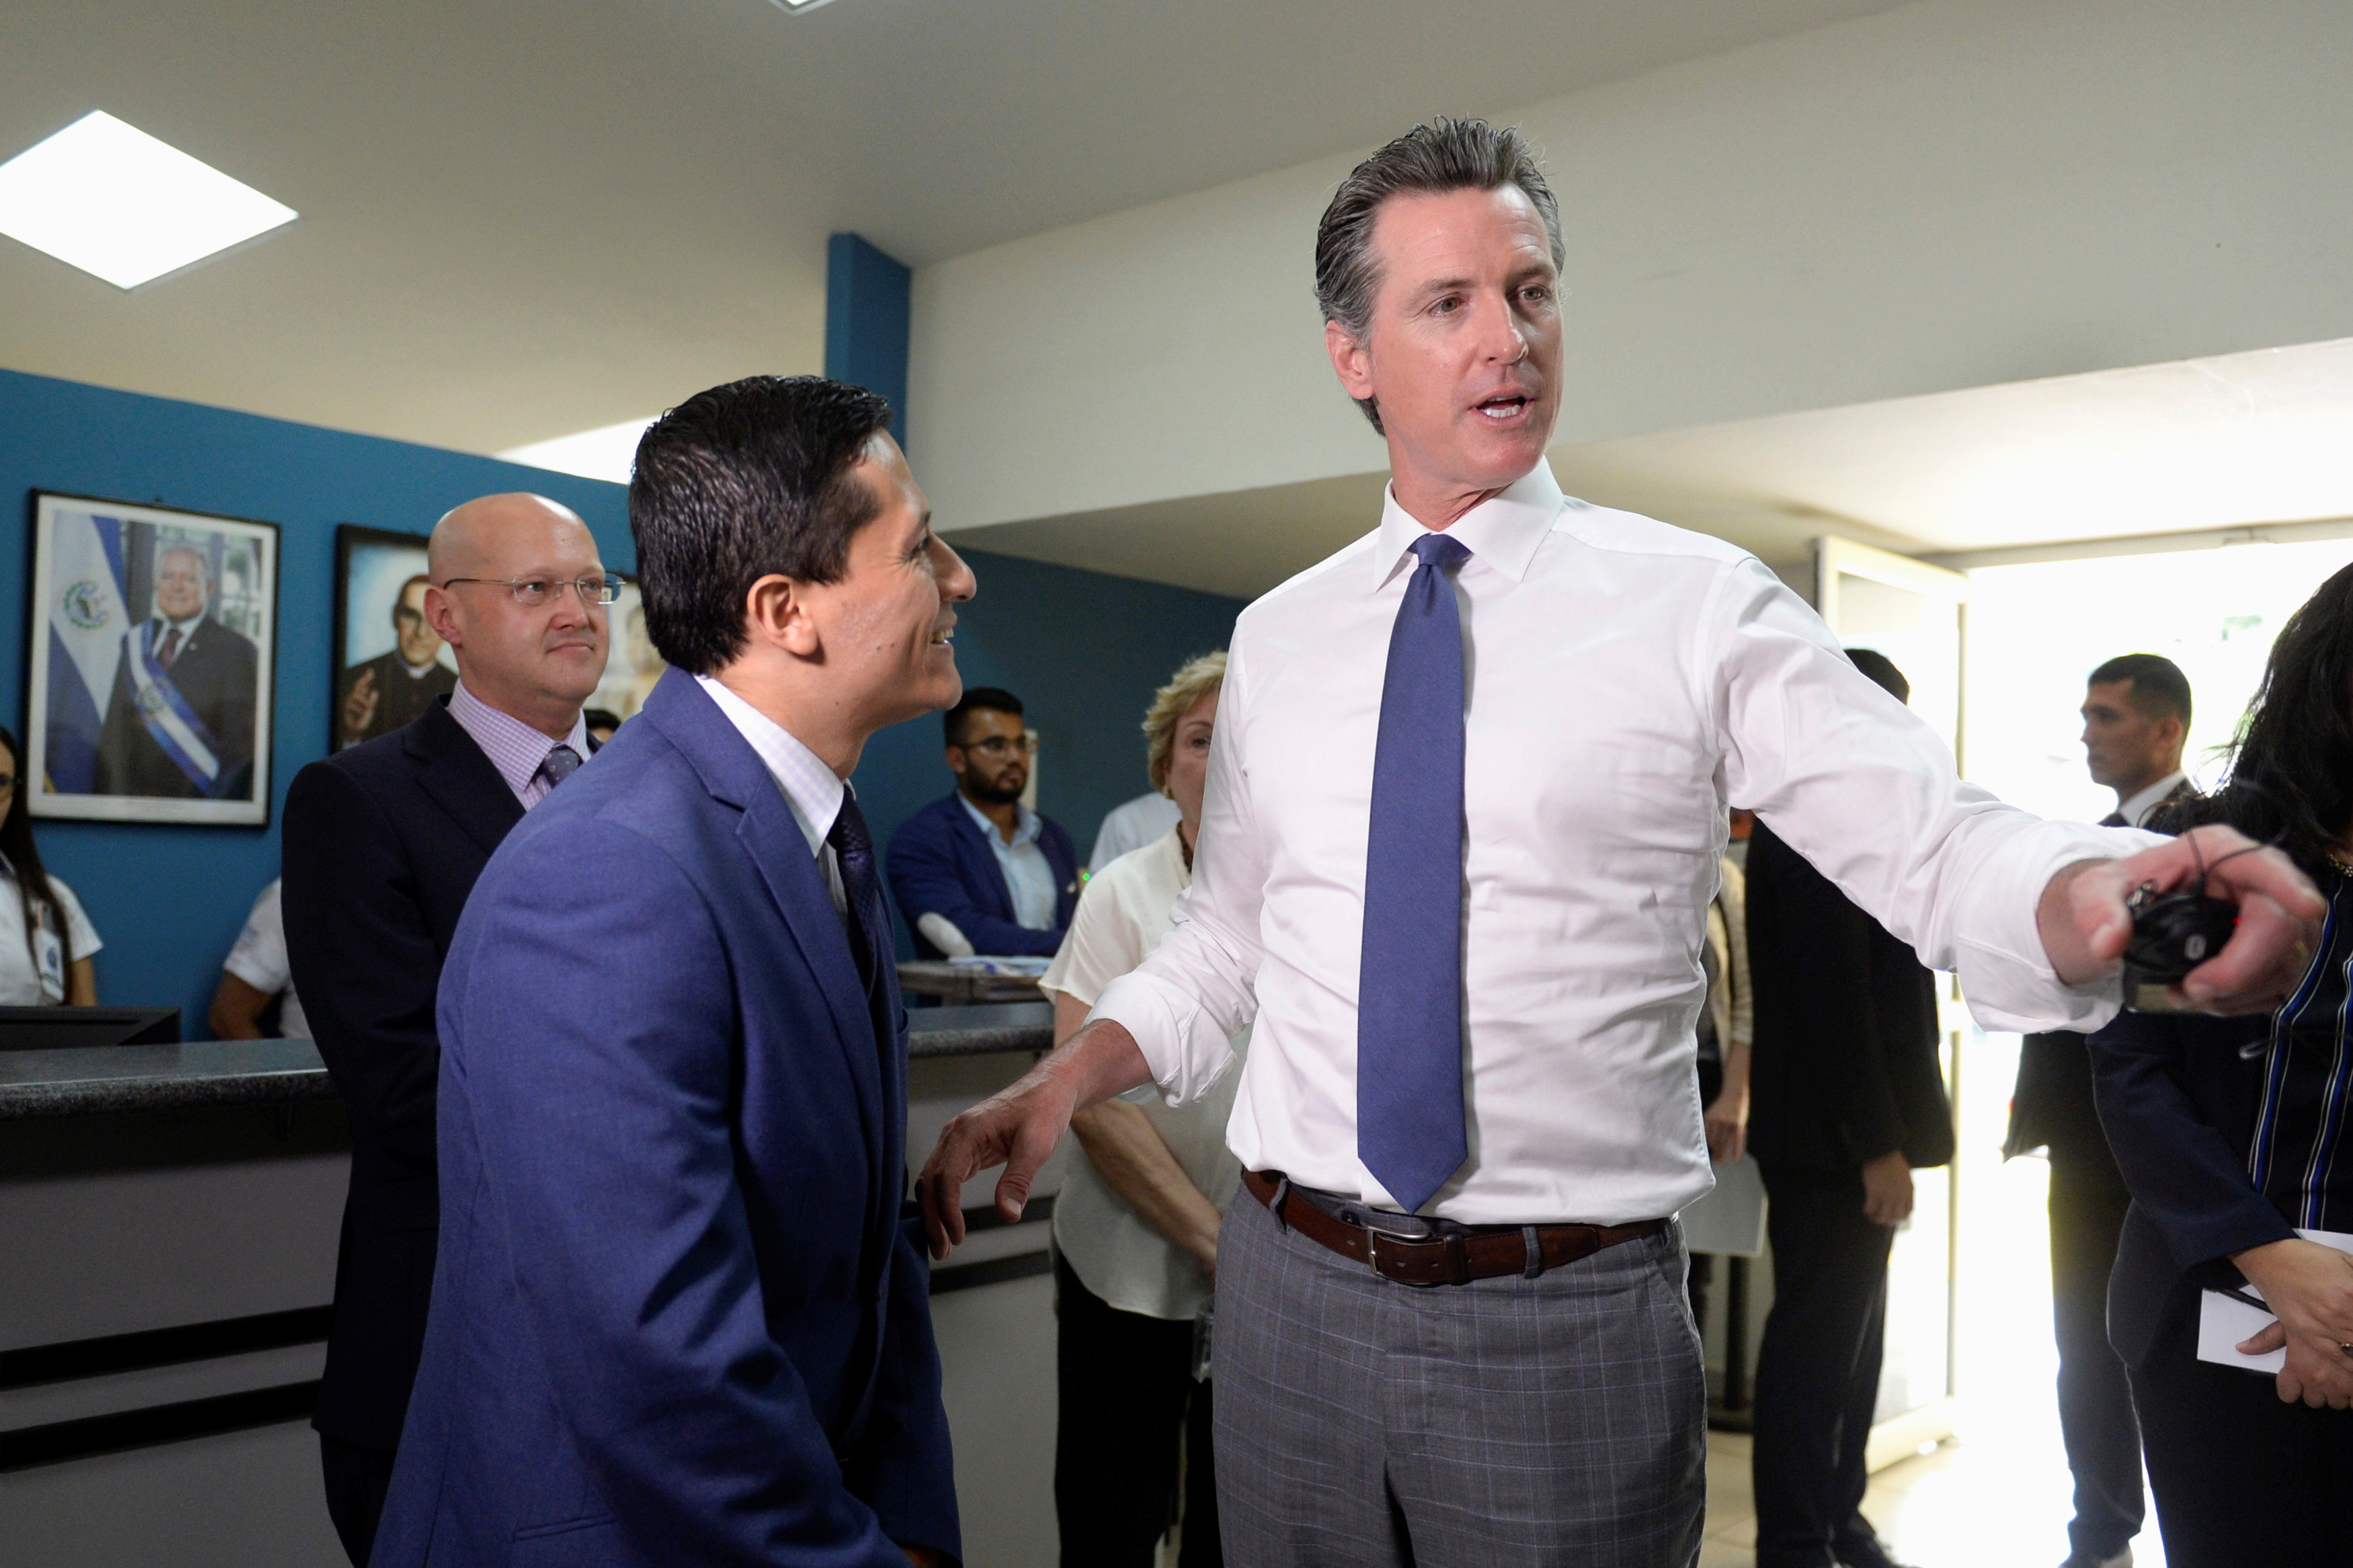 Governor of U.S. state of California Gavin Newsom visits the premises of a migrant assistance office in San Salvador